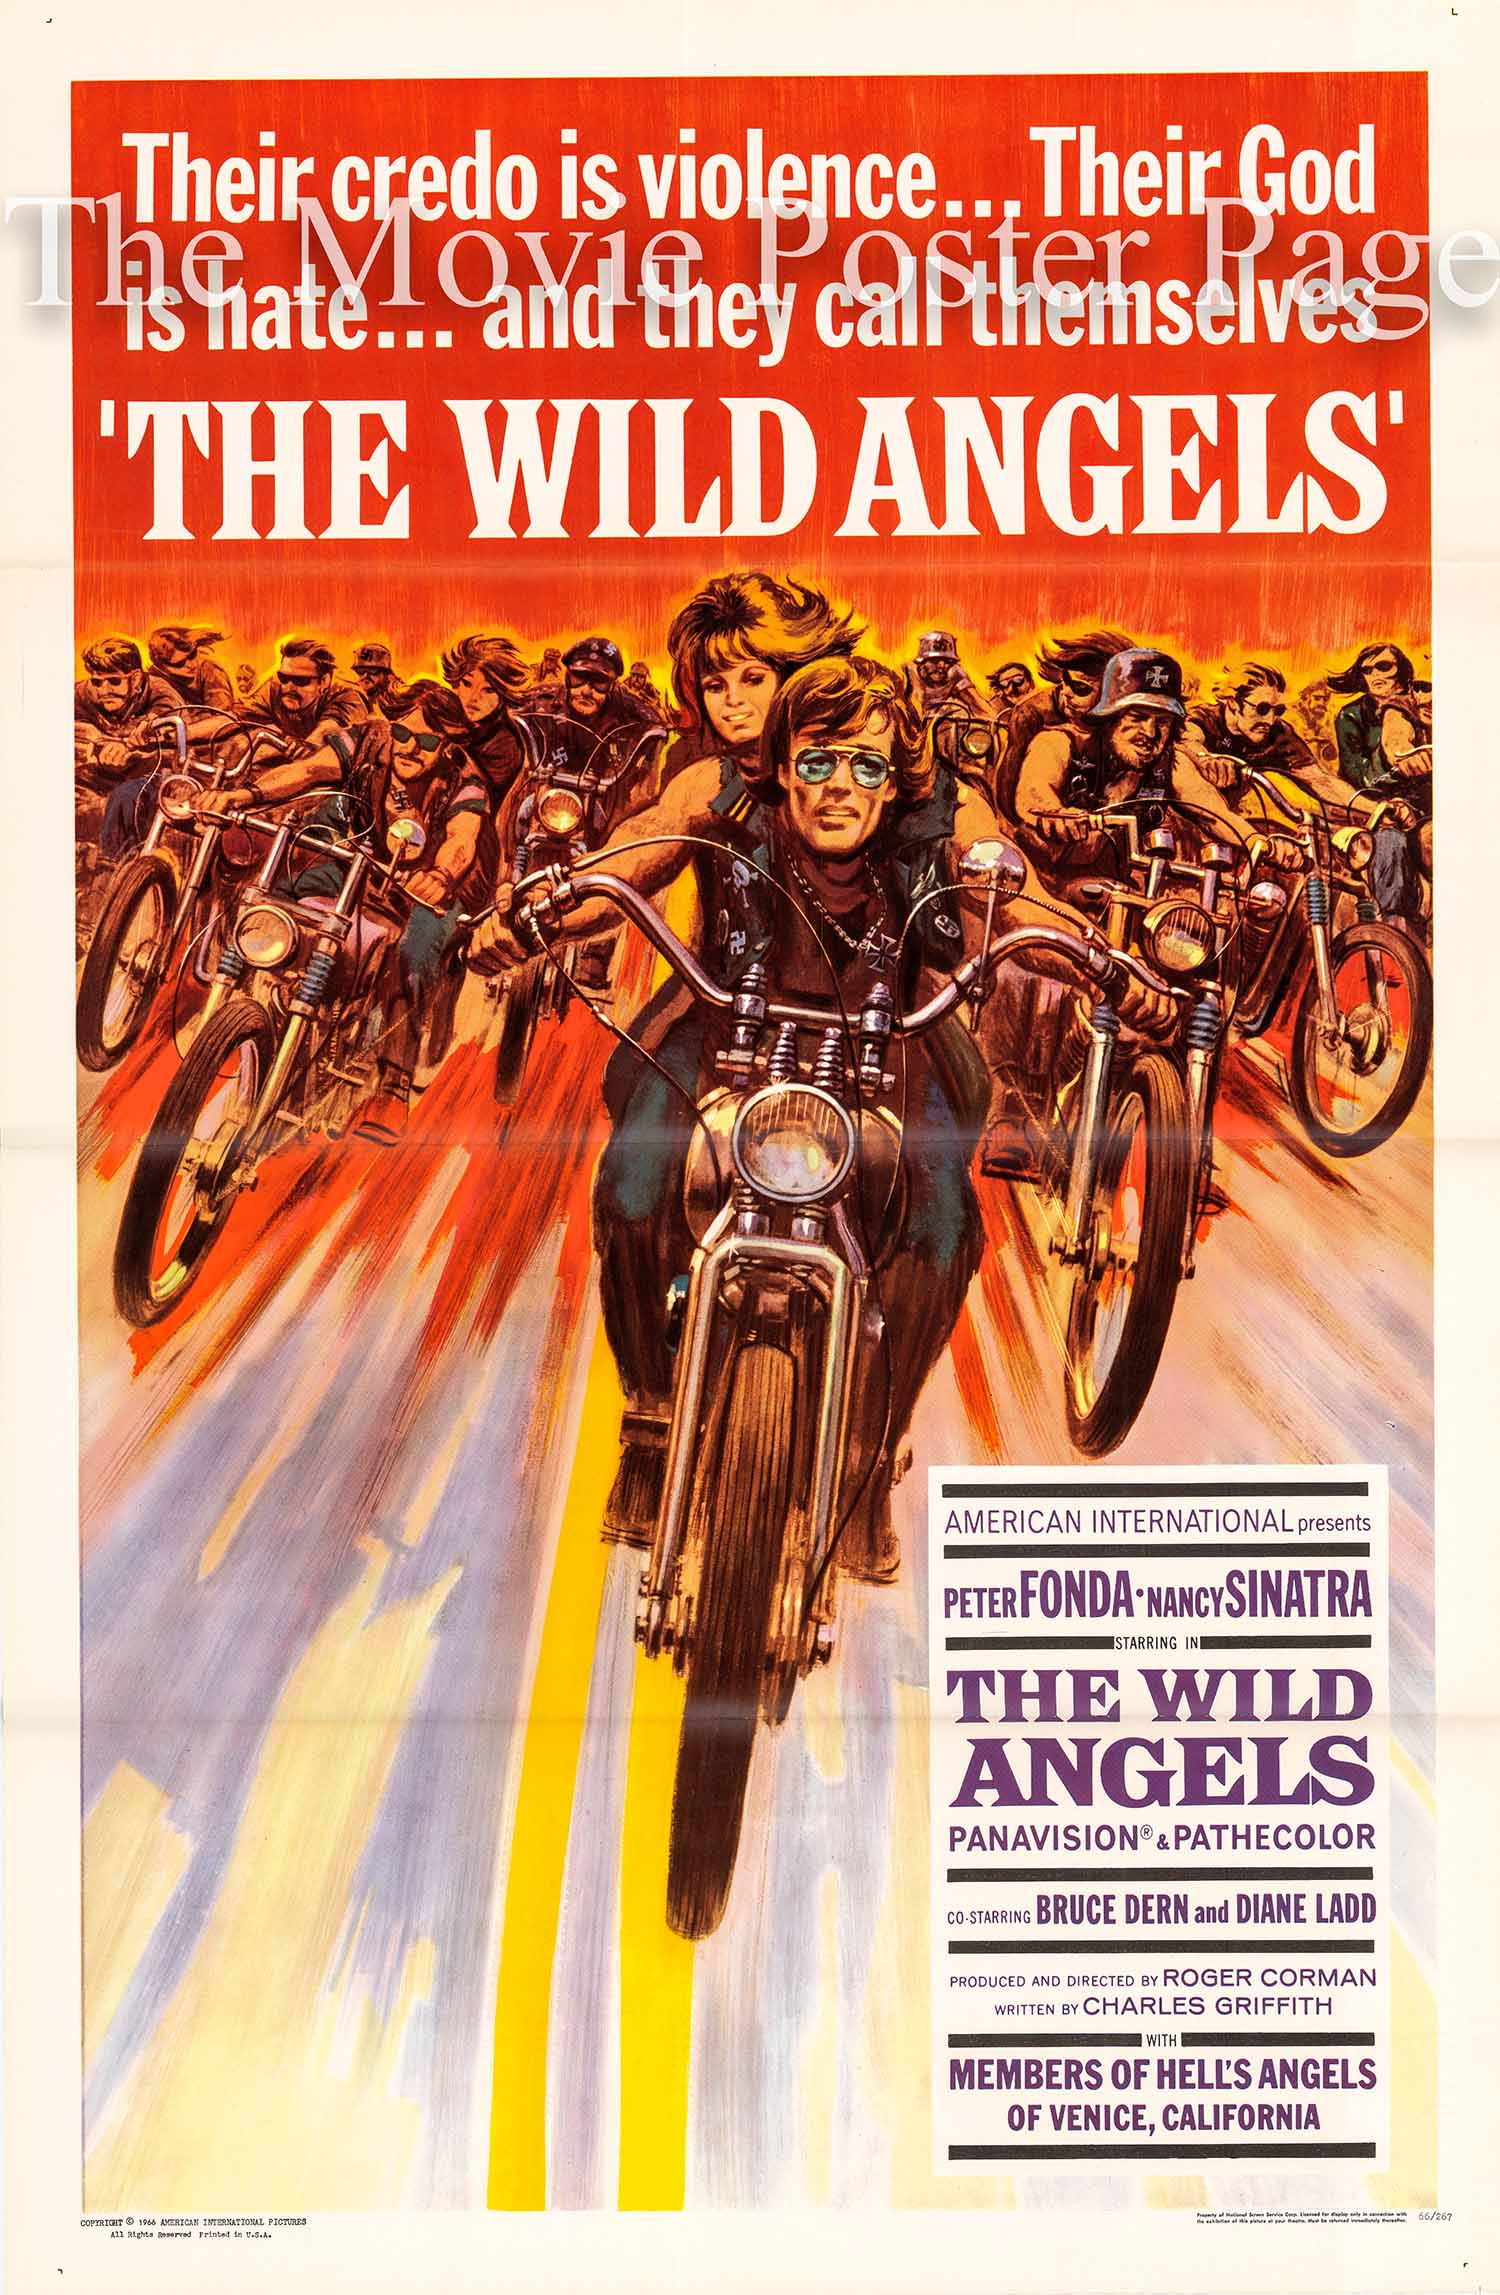 Pictured is a US one-sheet promotional poster for the 1966 Roger Corman film The Wild Angels starring Peter Fonda.